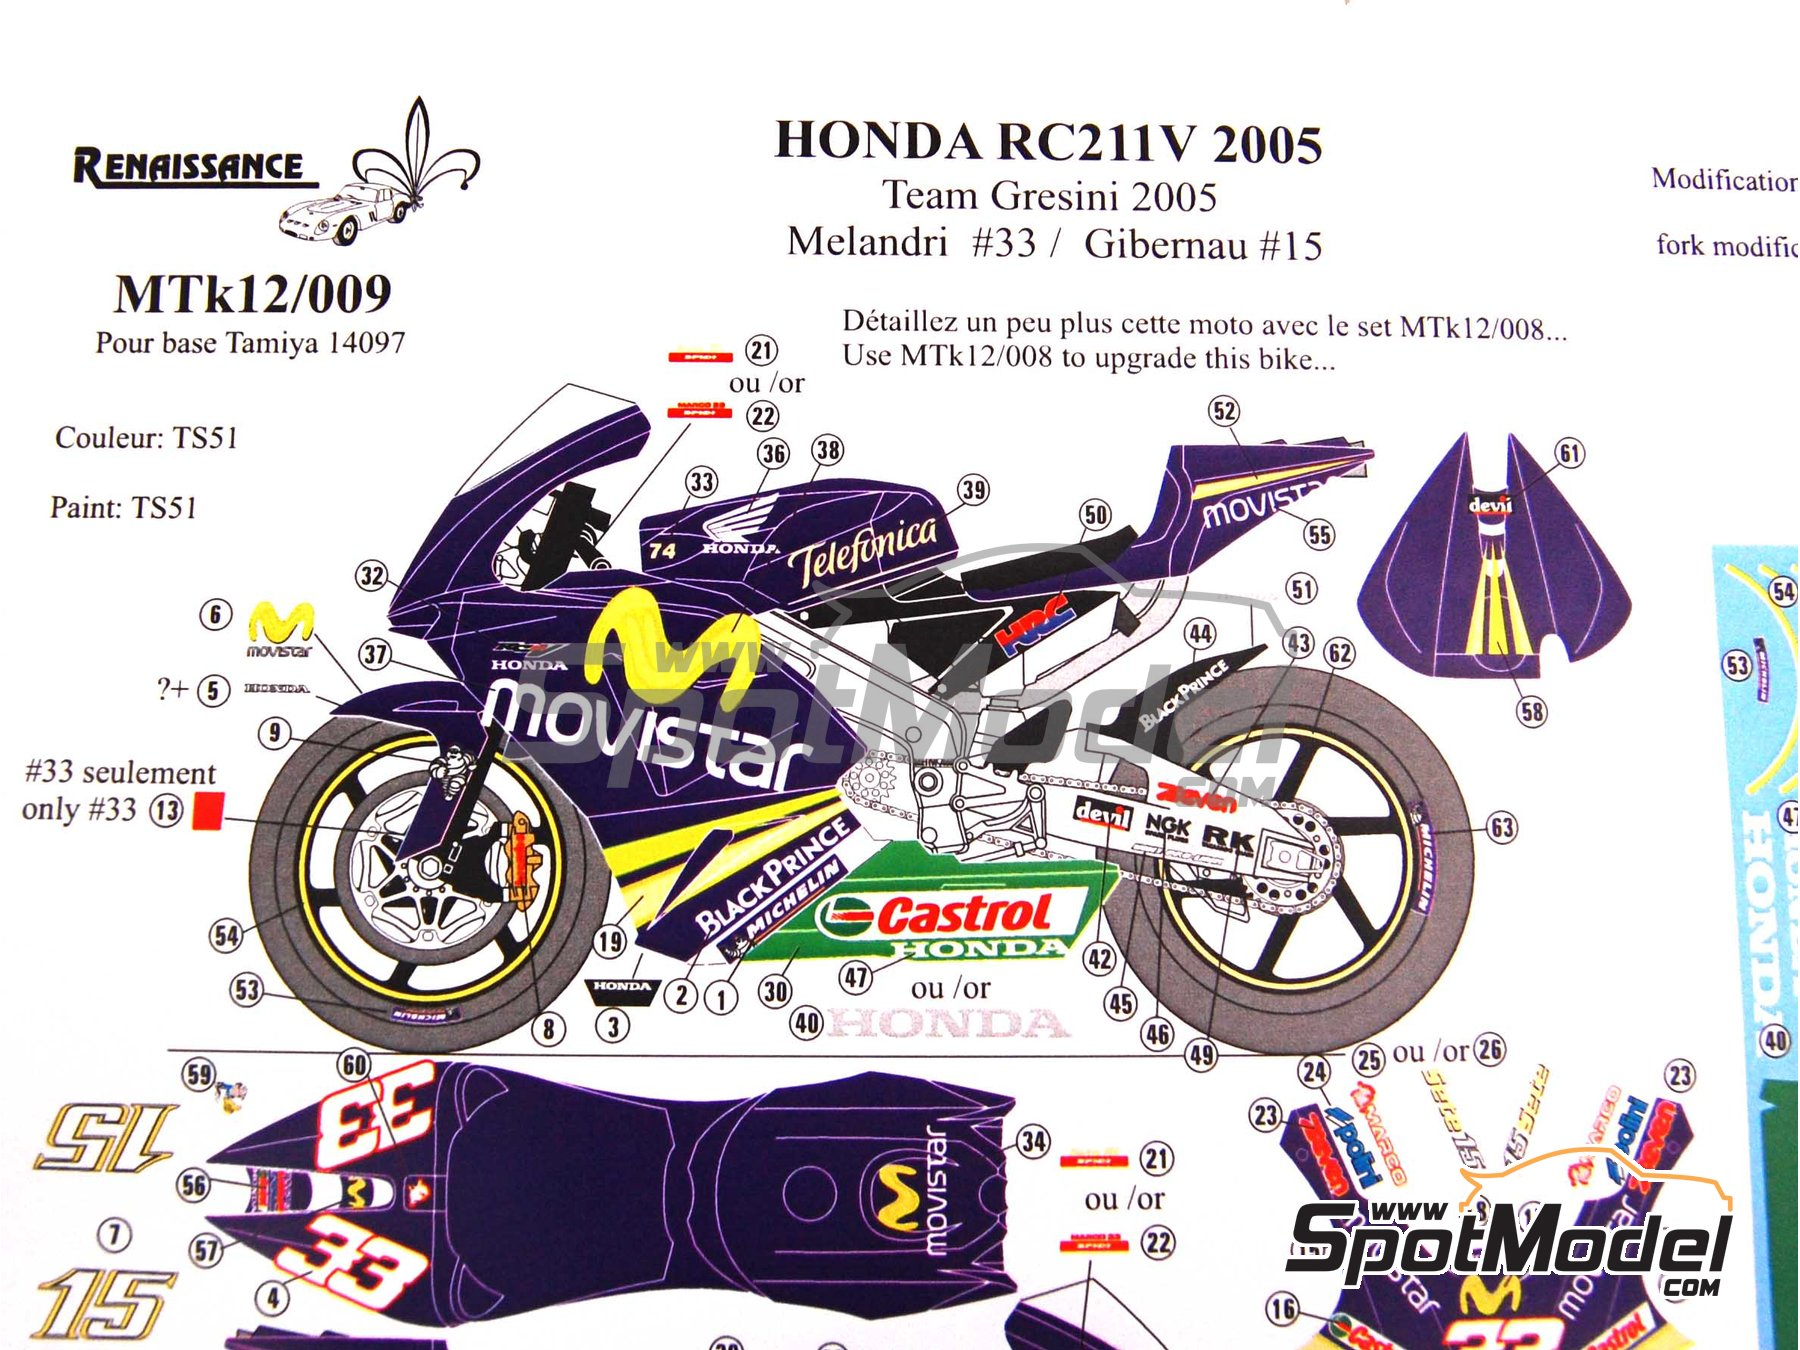 Image 2: Honda RC211V Telefonica Movistar Team Gresini - Motorcycle World Championship 2005 | Marking / livery in 1/12 scale manufactured by Renaissance Models (ref.MTK12-009DS)